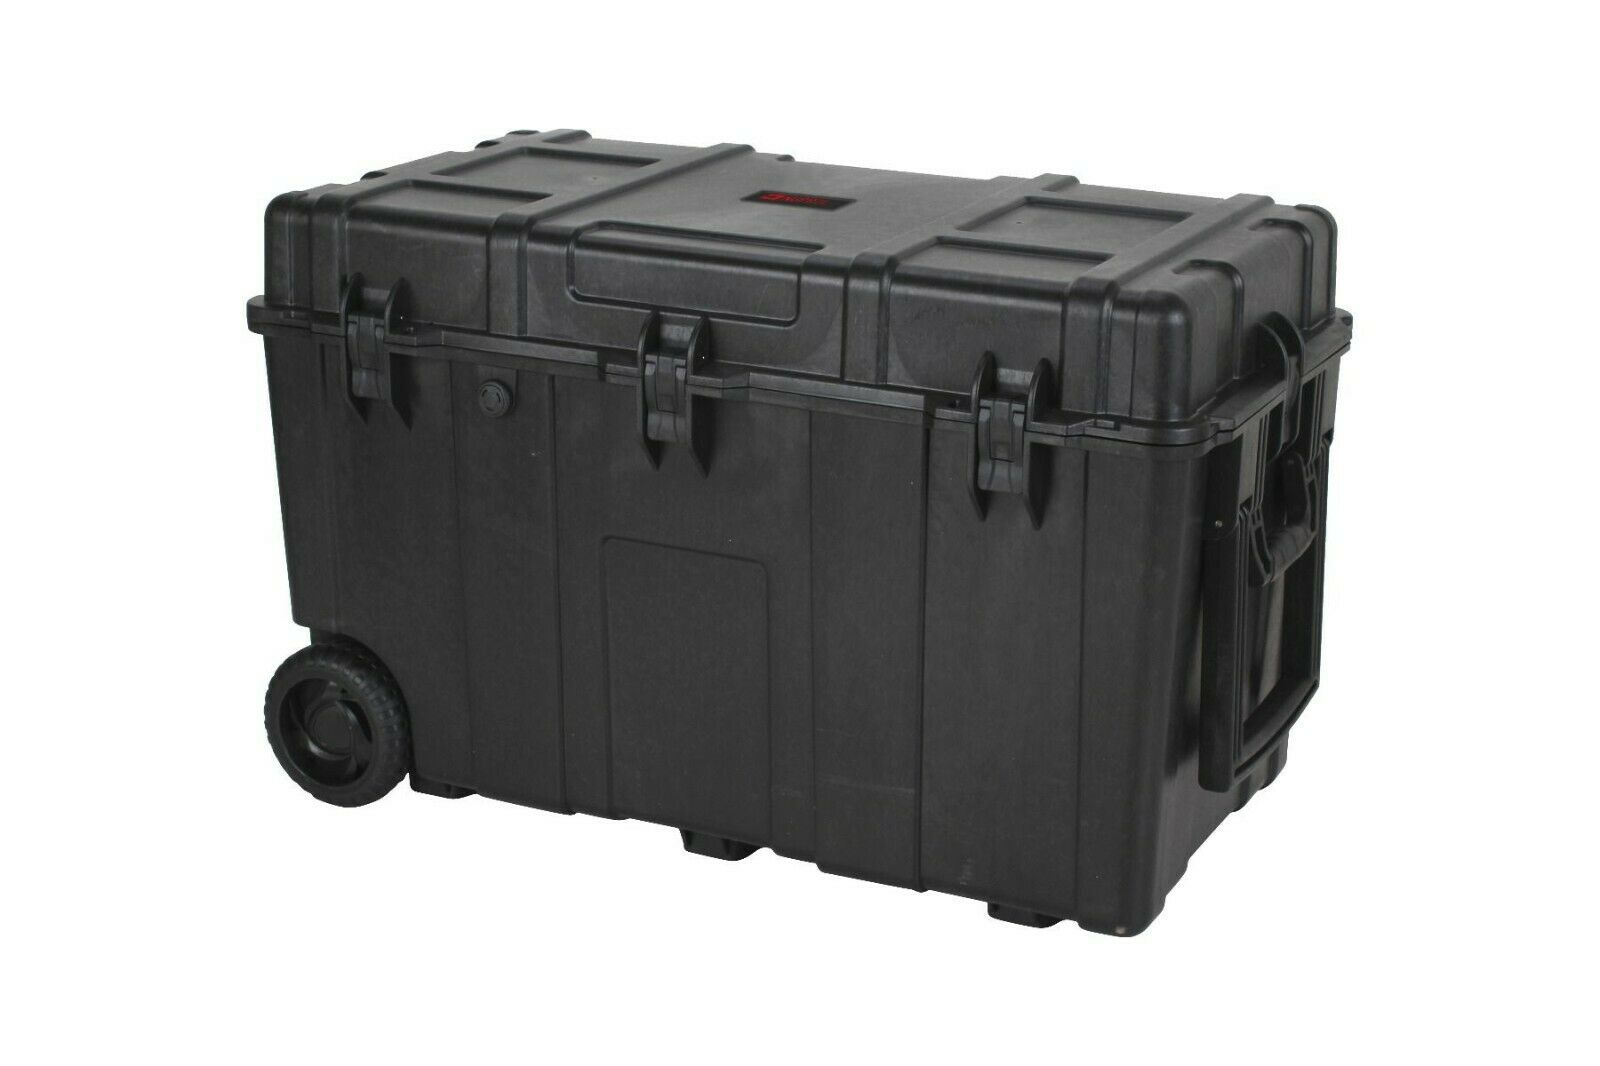 BIG Mobile Wheeled Waterproof IP67 Rated Hard Protective Camera Case Trunk Case